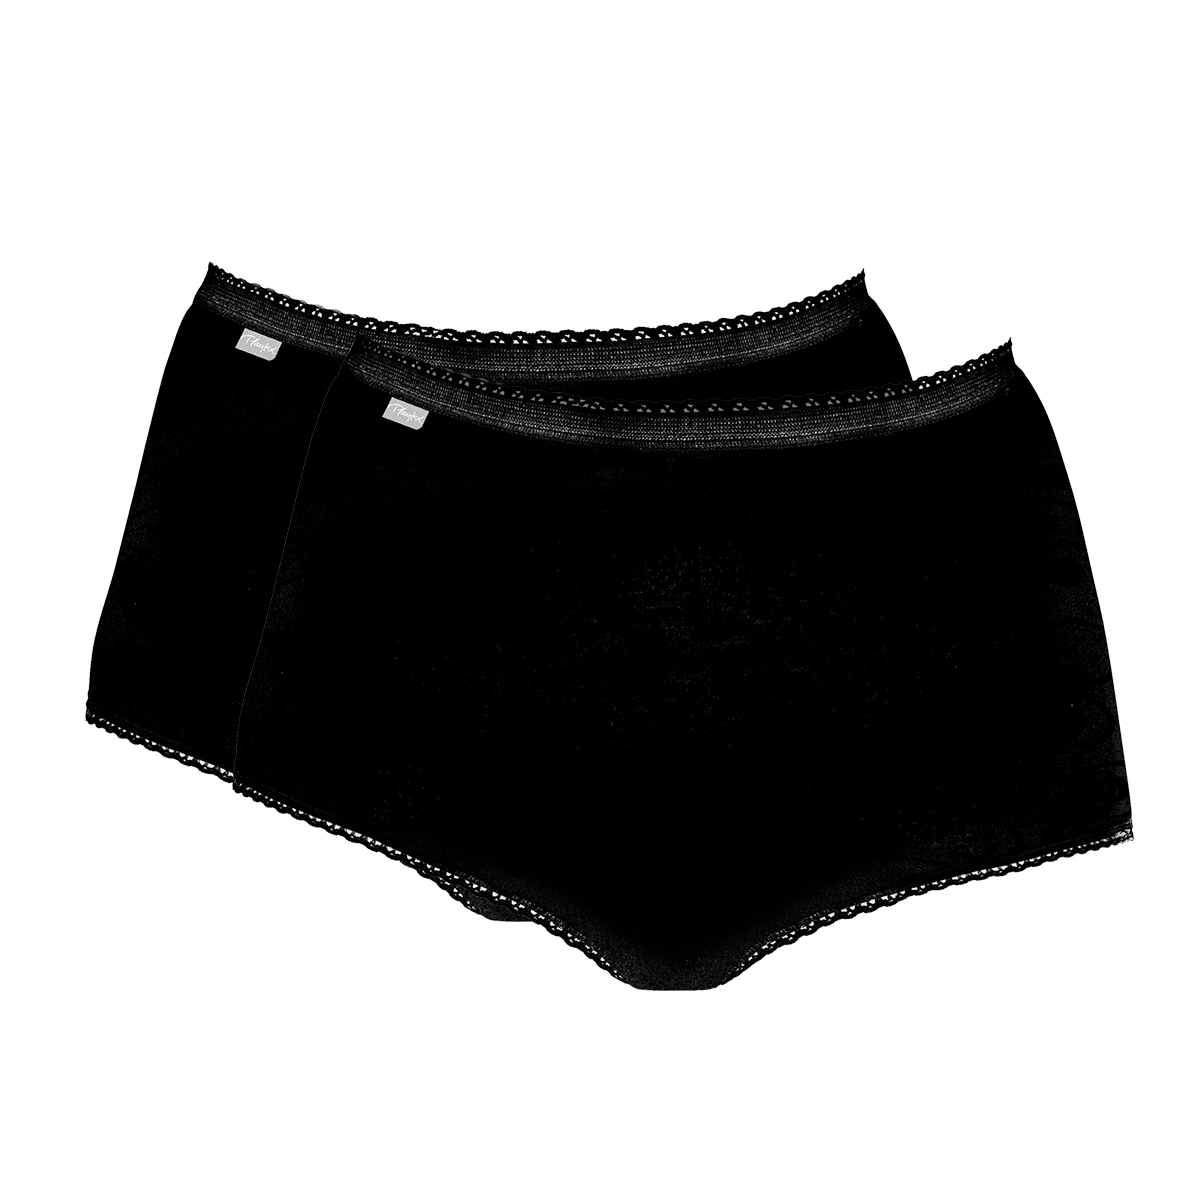 2 x high-rise knickers in Black – Stretch Cotton, , PLAYTEX